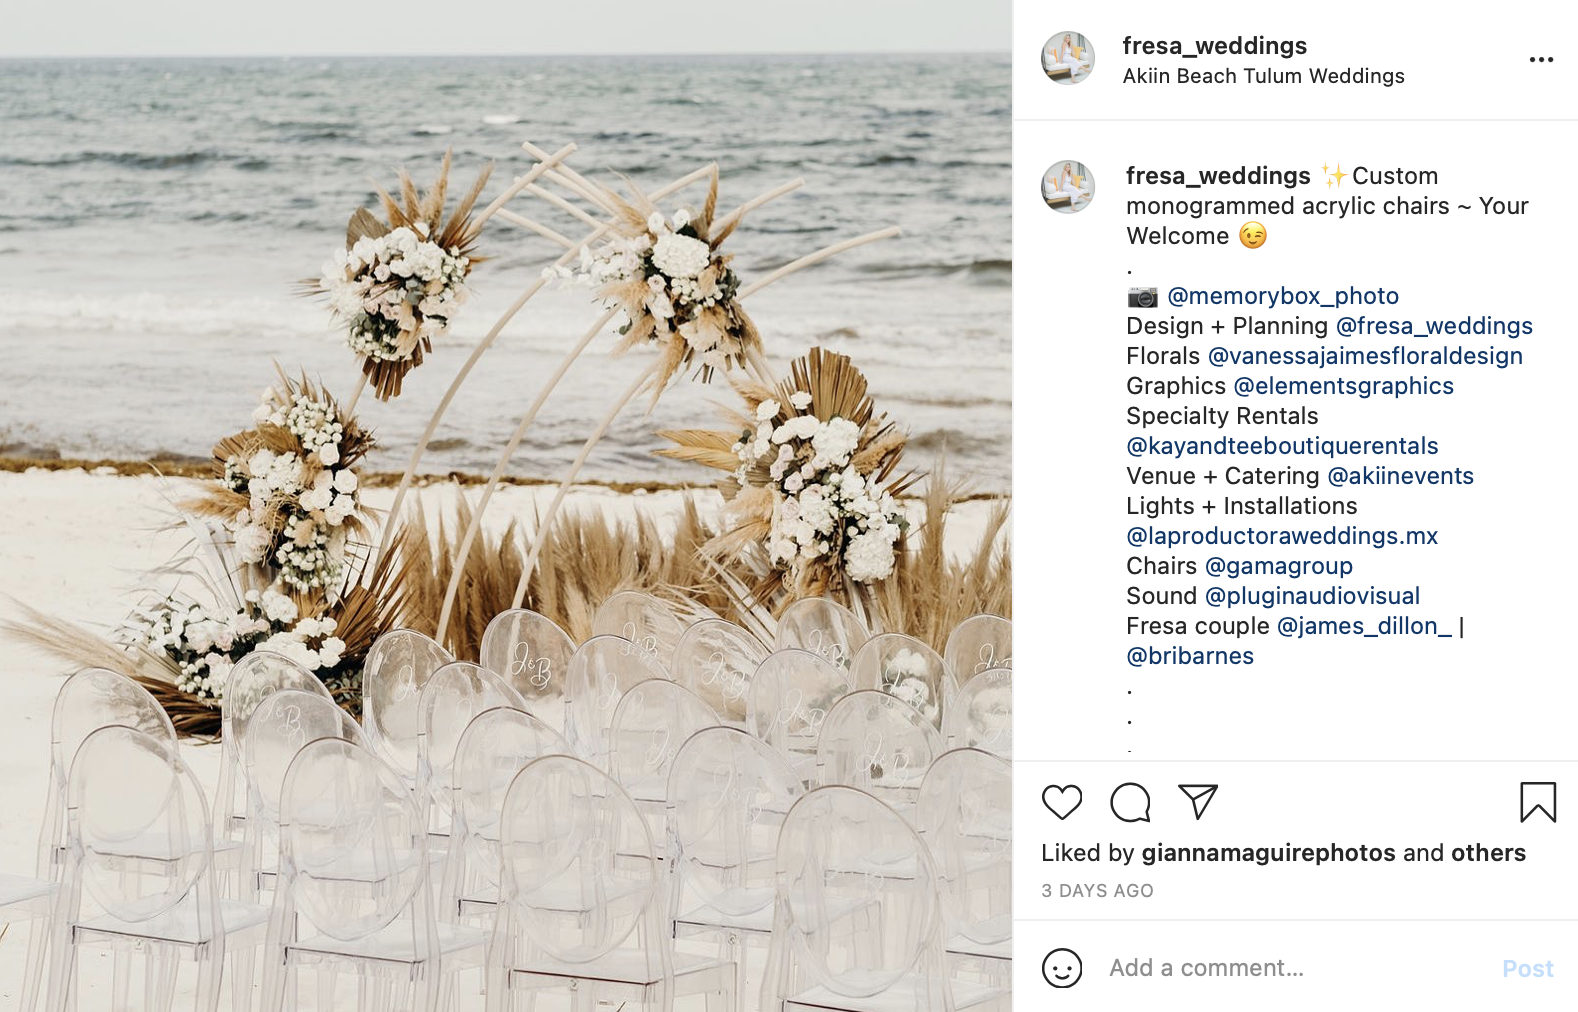 wedding with beach setting and floral arrangements